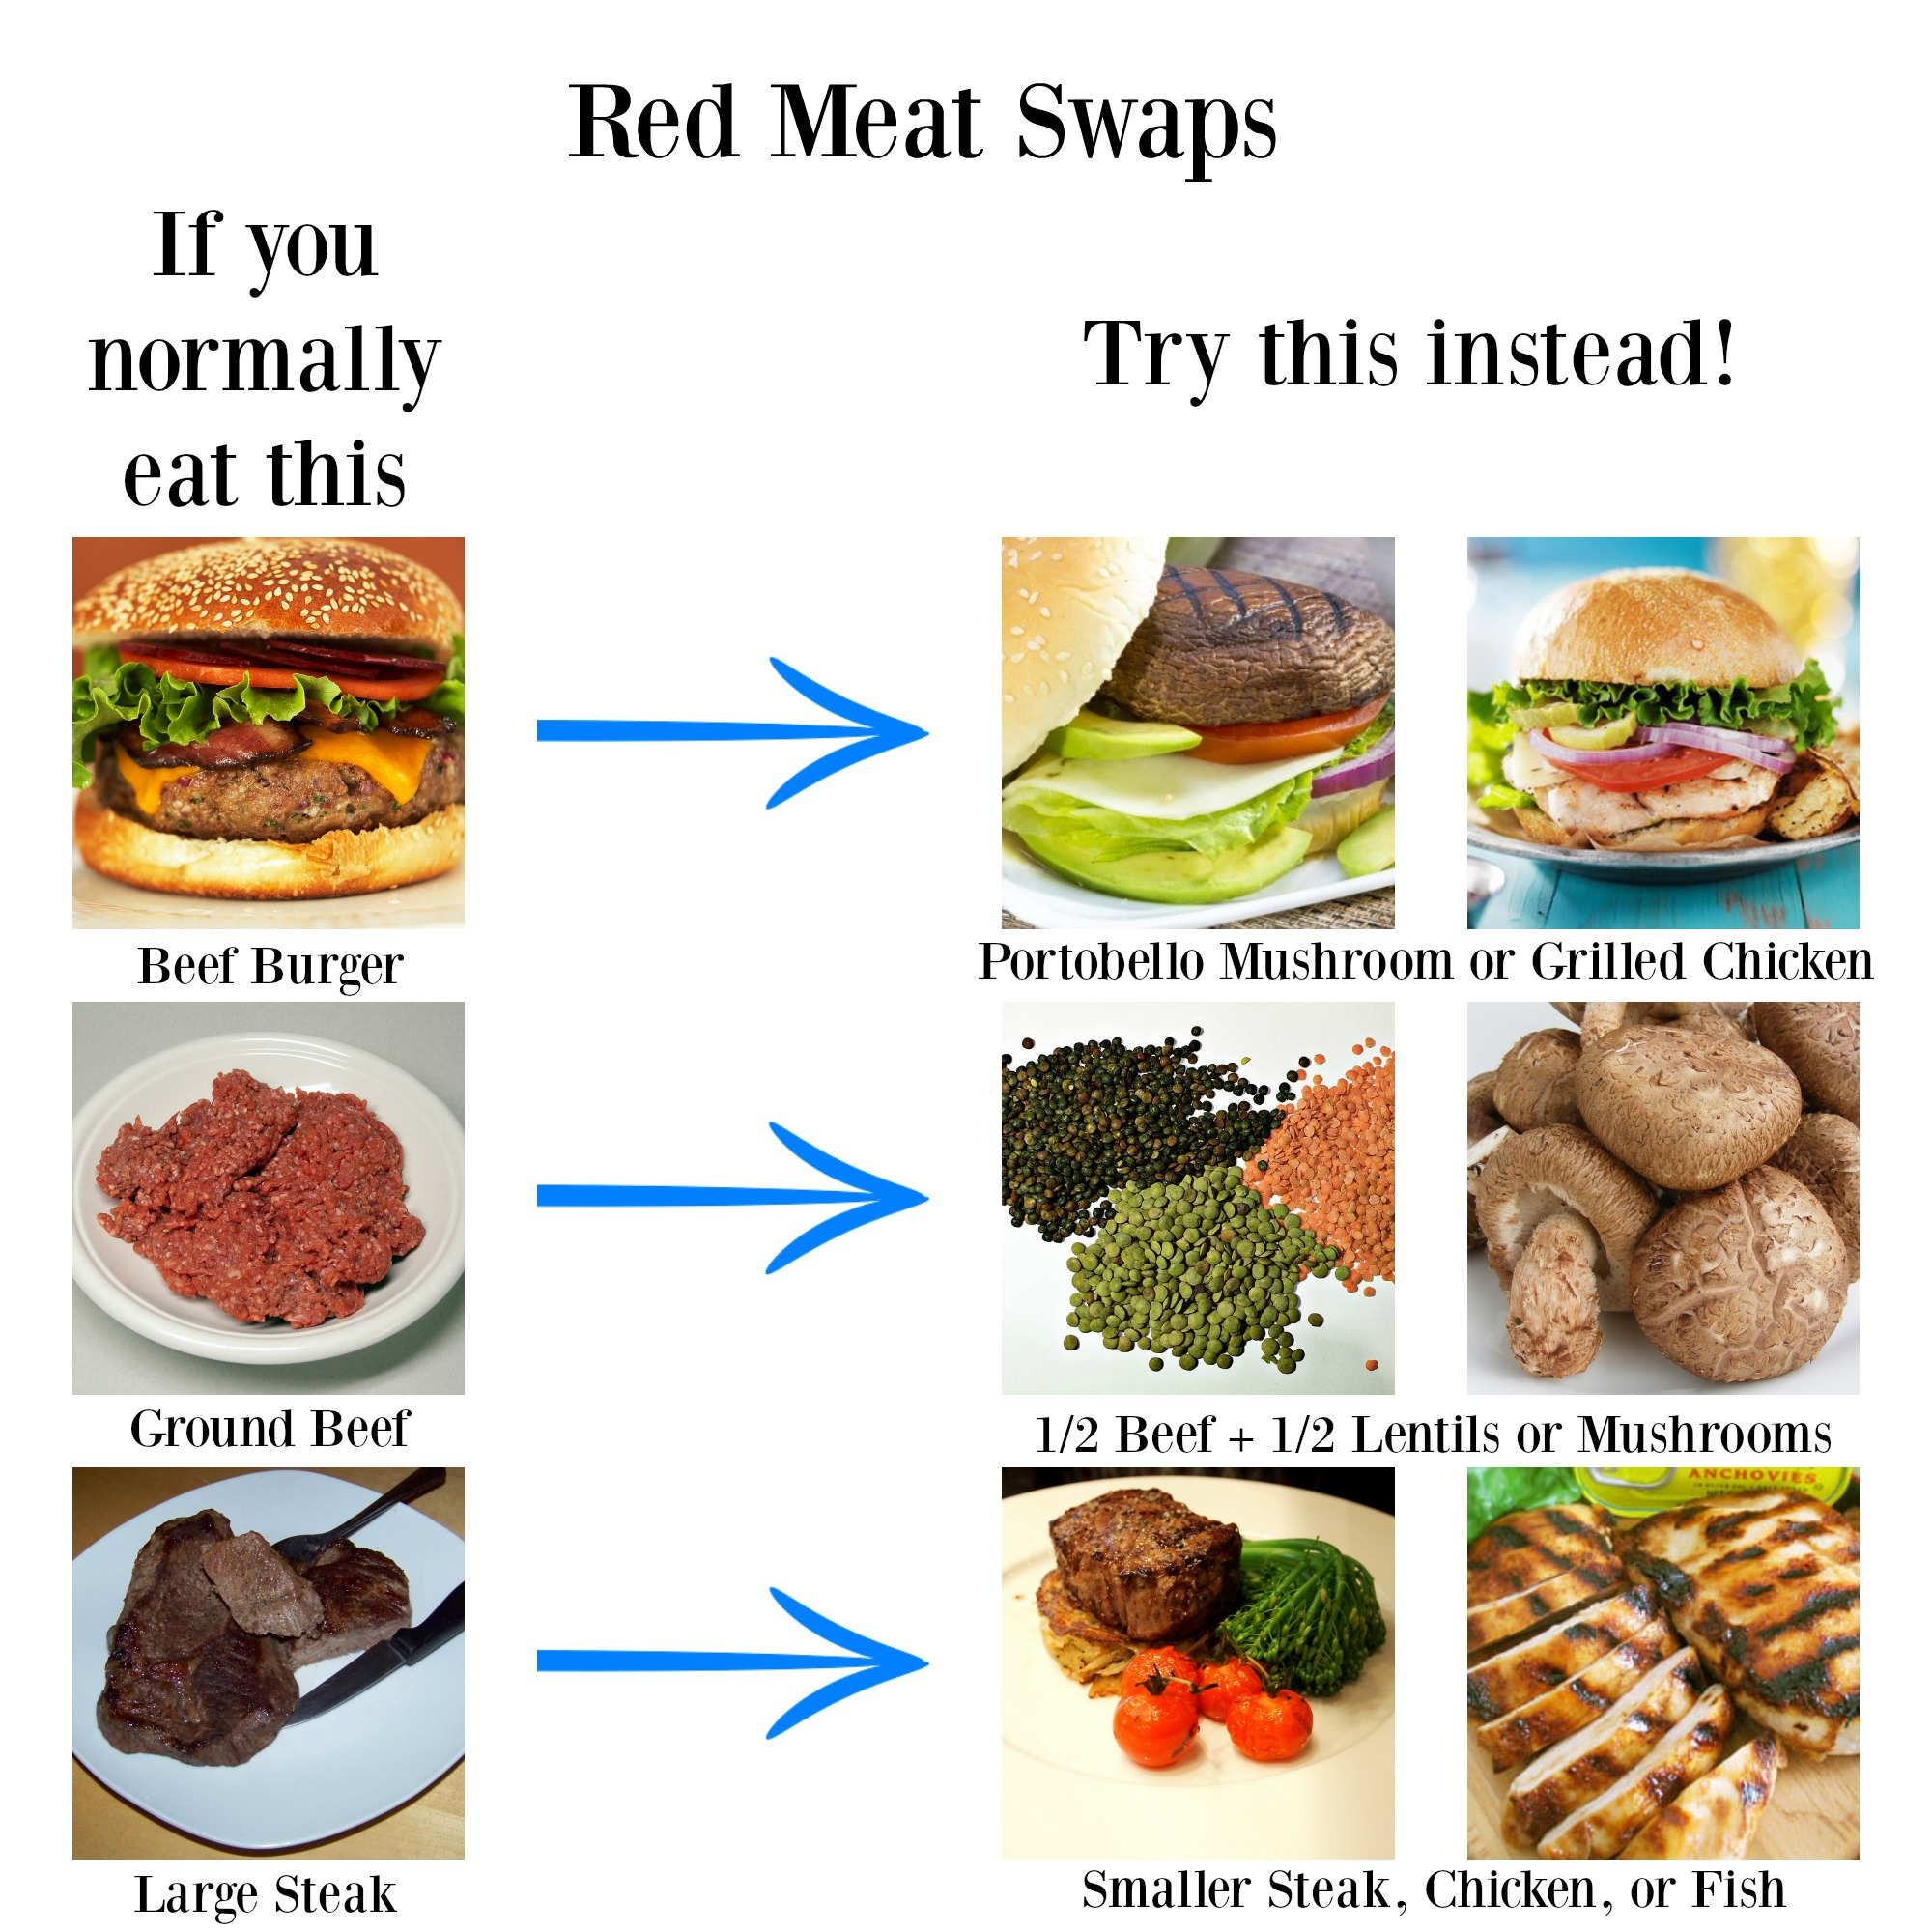 Red meat swaps